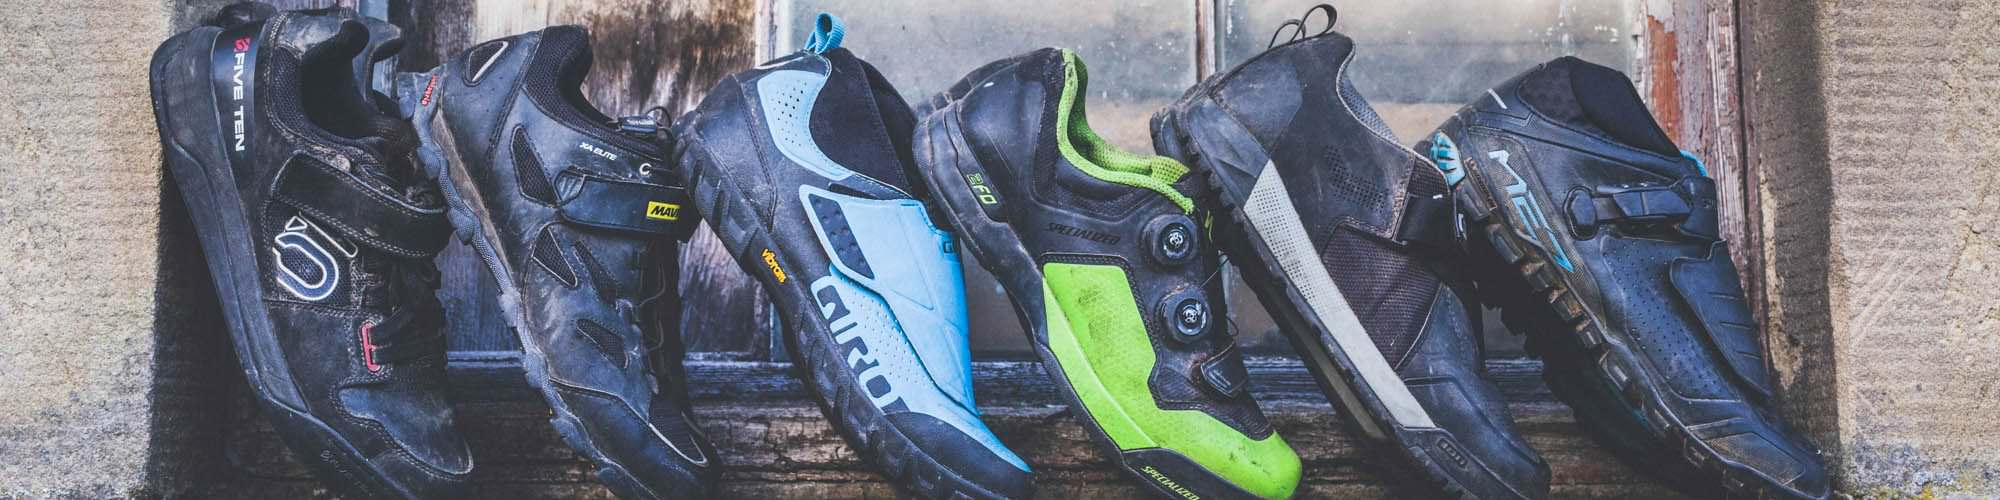 The best clipless MTB shoes you can buy for trail riding